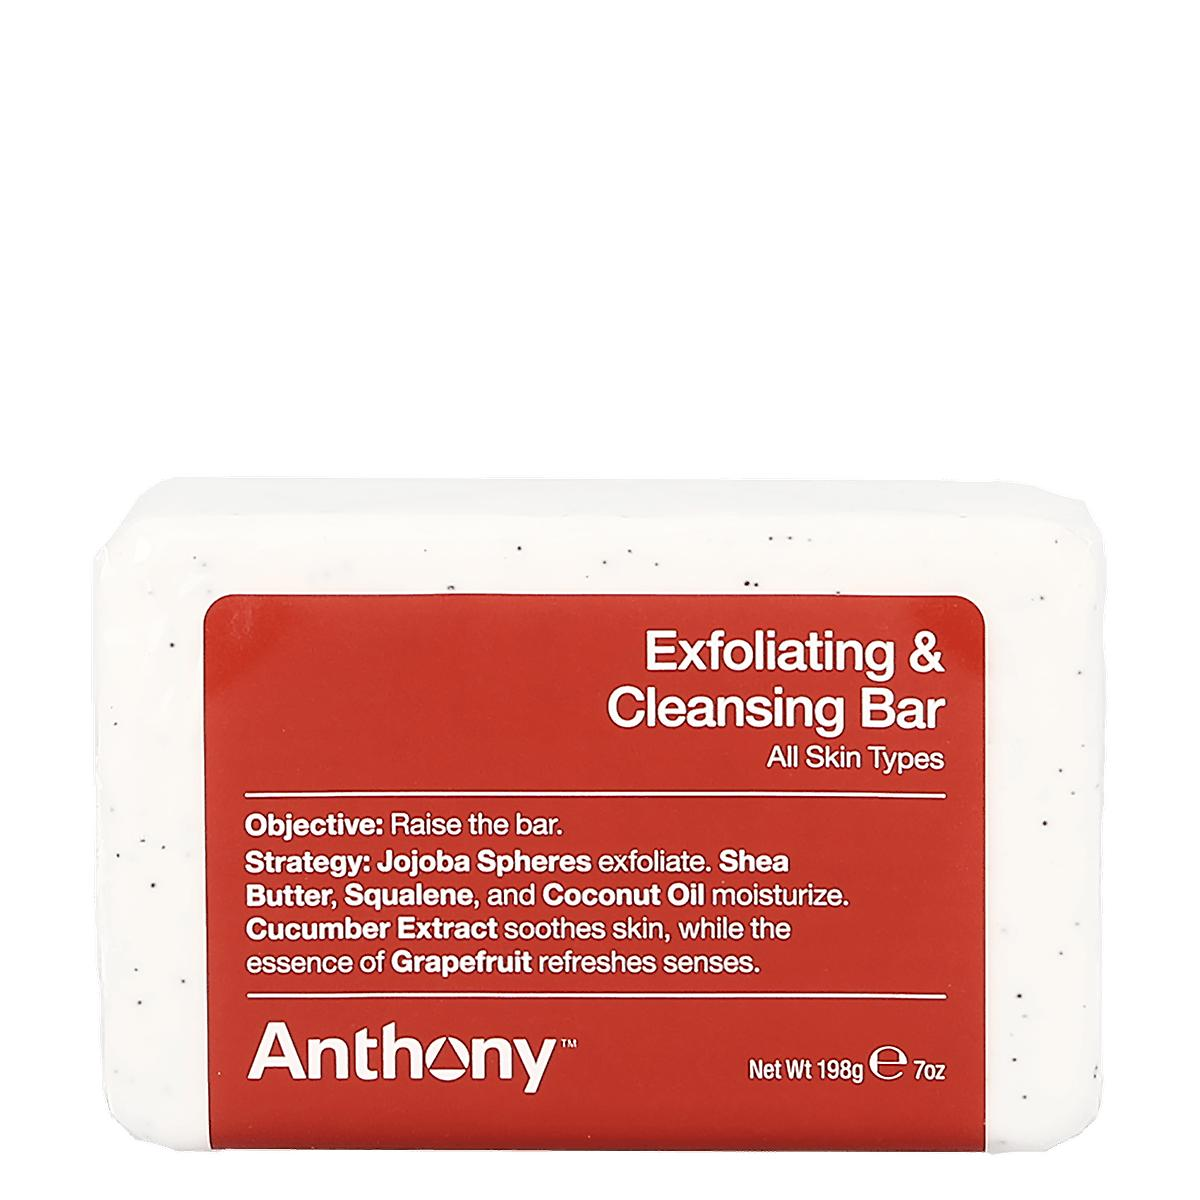 Anthony Exfoliating & Cleansing Bar 198g